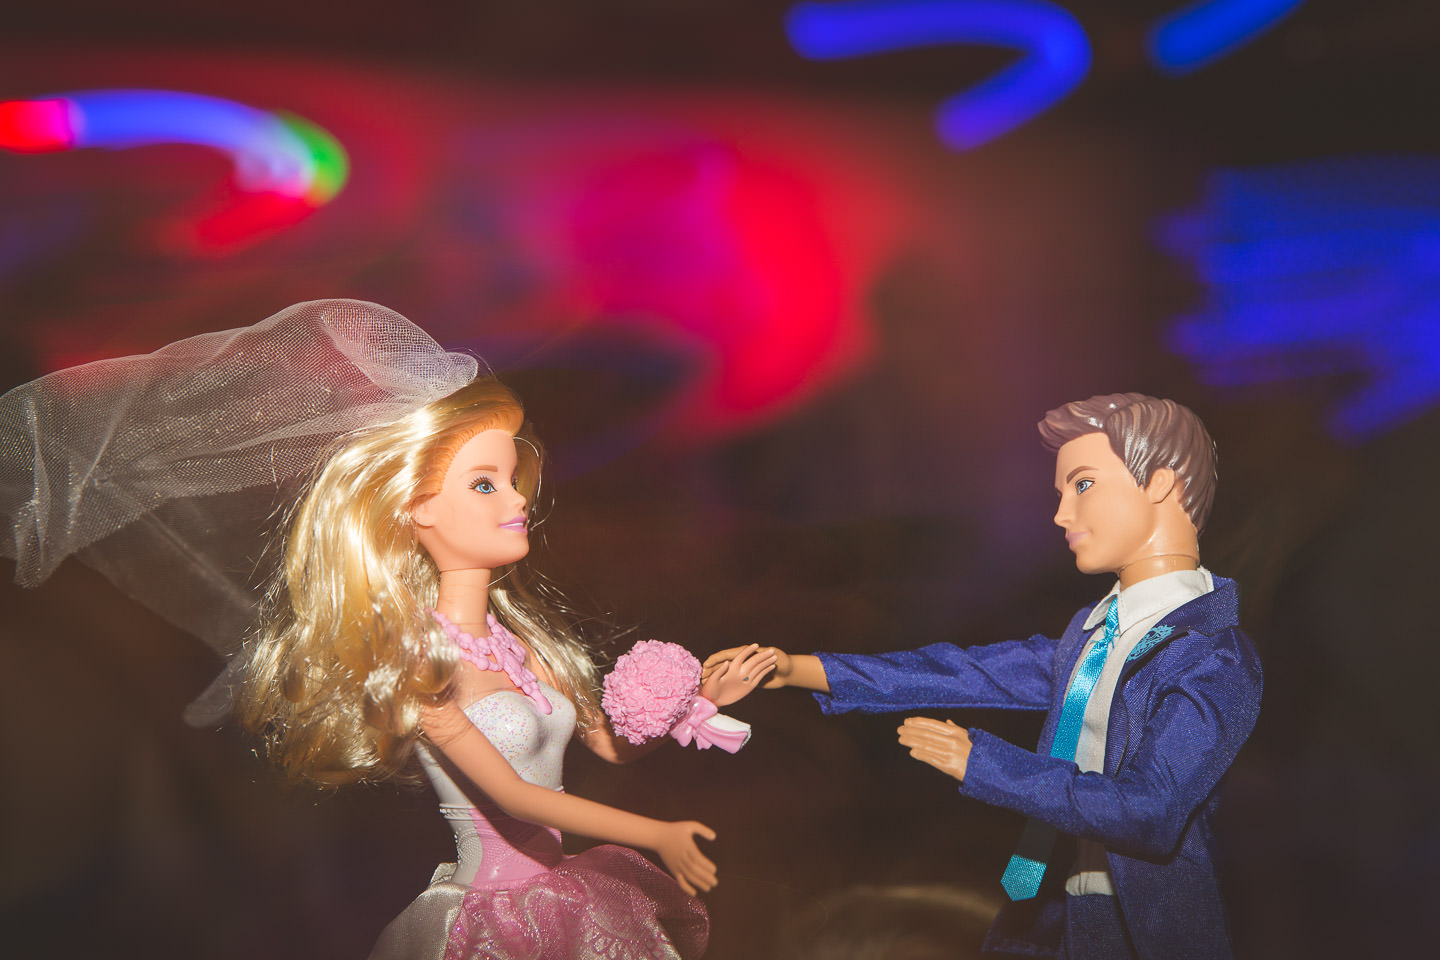 Mt-Brighton-Michigan-Wedding-Reception-Barbie-Ken-Dolls